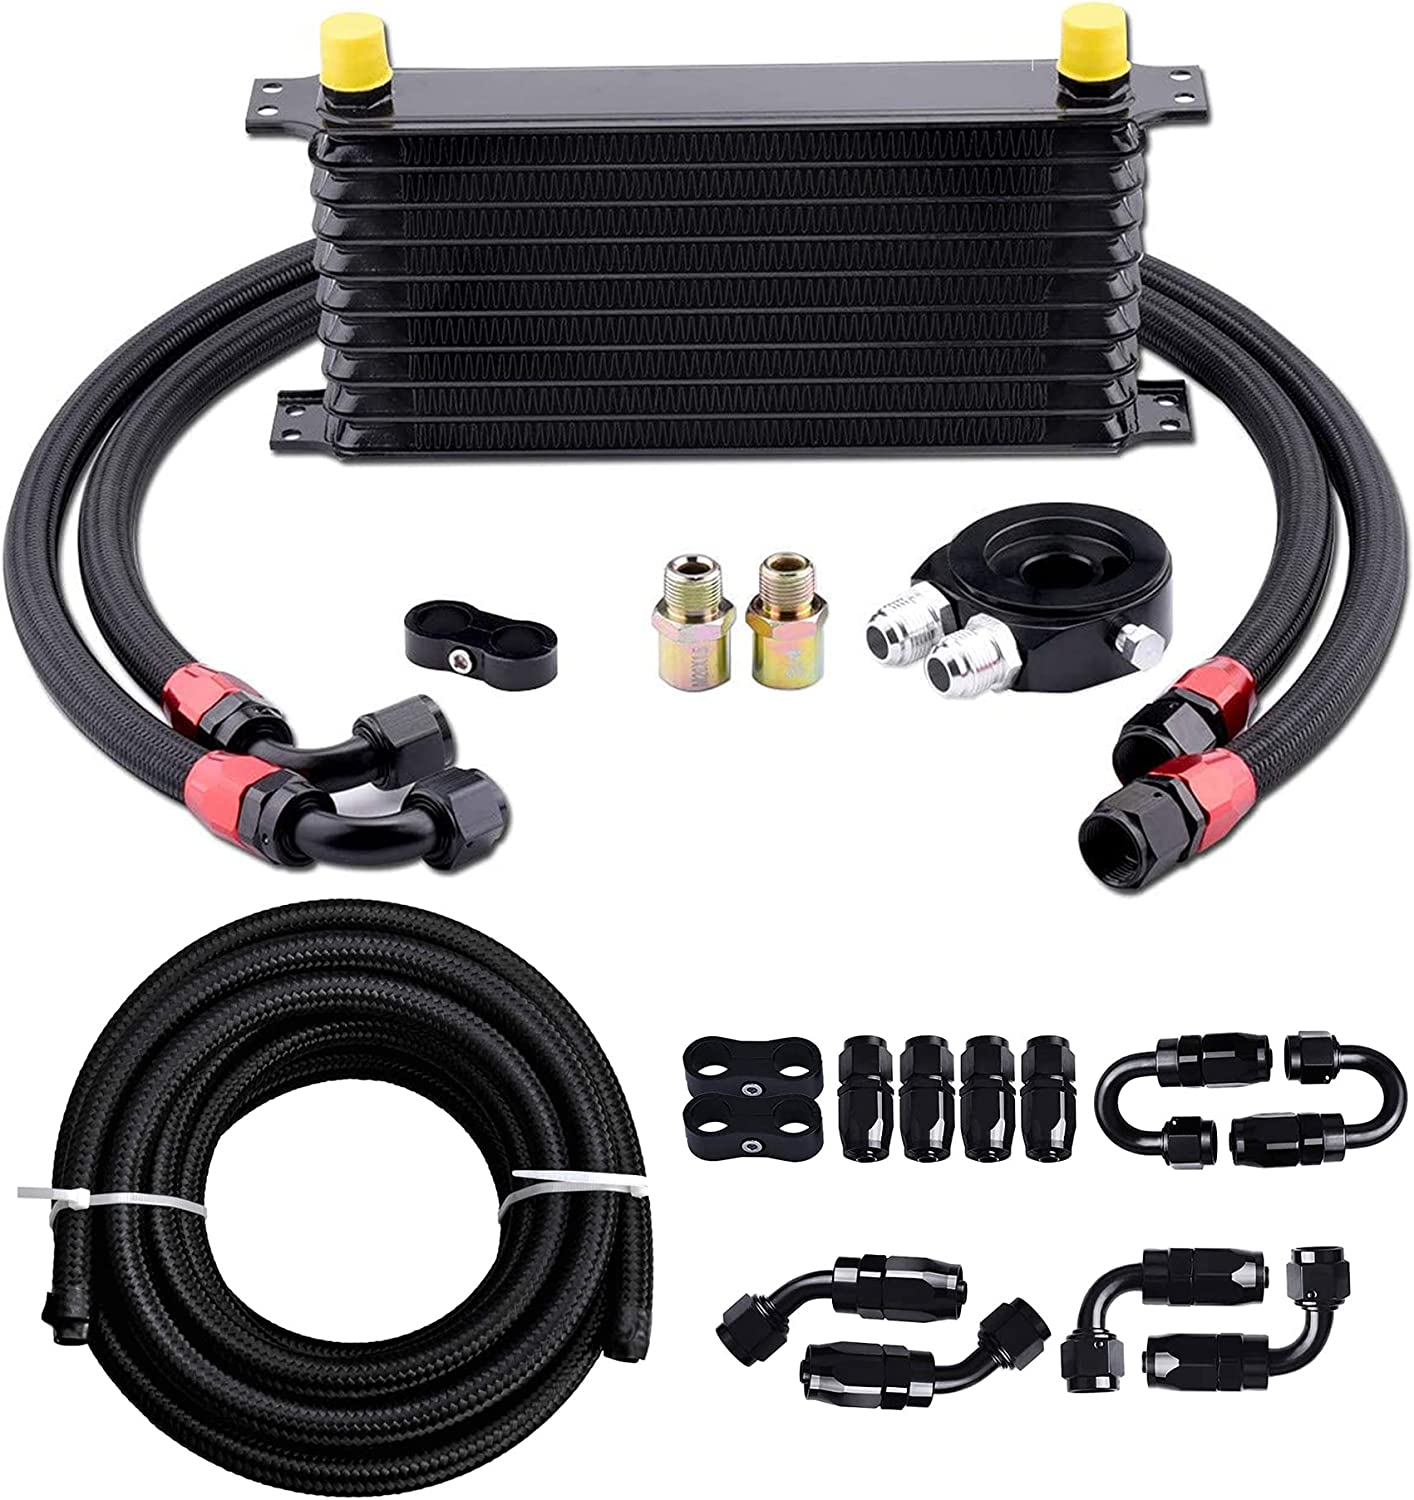 EVIL ENERGY 10 Cheap bargain Row AN10-10AN Oil Cooler Engine Free shipping anywhere in the nation Kit Universal Tra